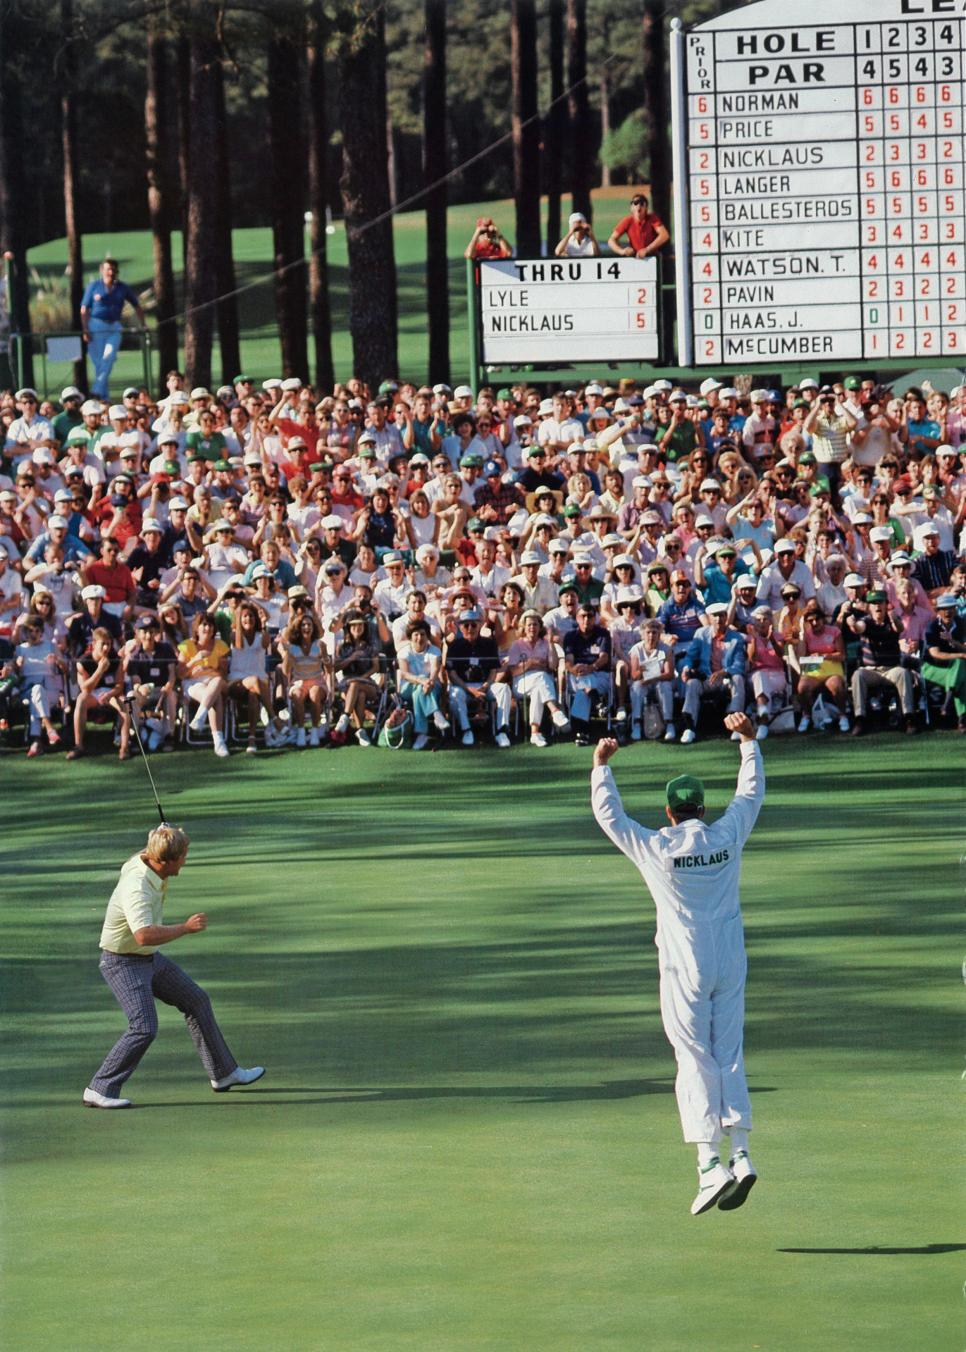 Jack Nicklaus Celebrates Eagle On The 15th Hole In The 1986 Maters Tournament